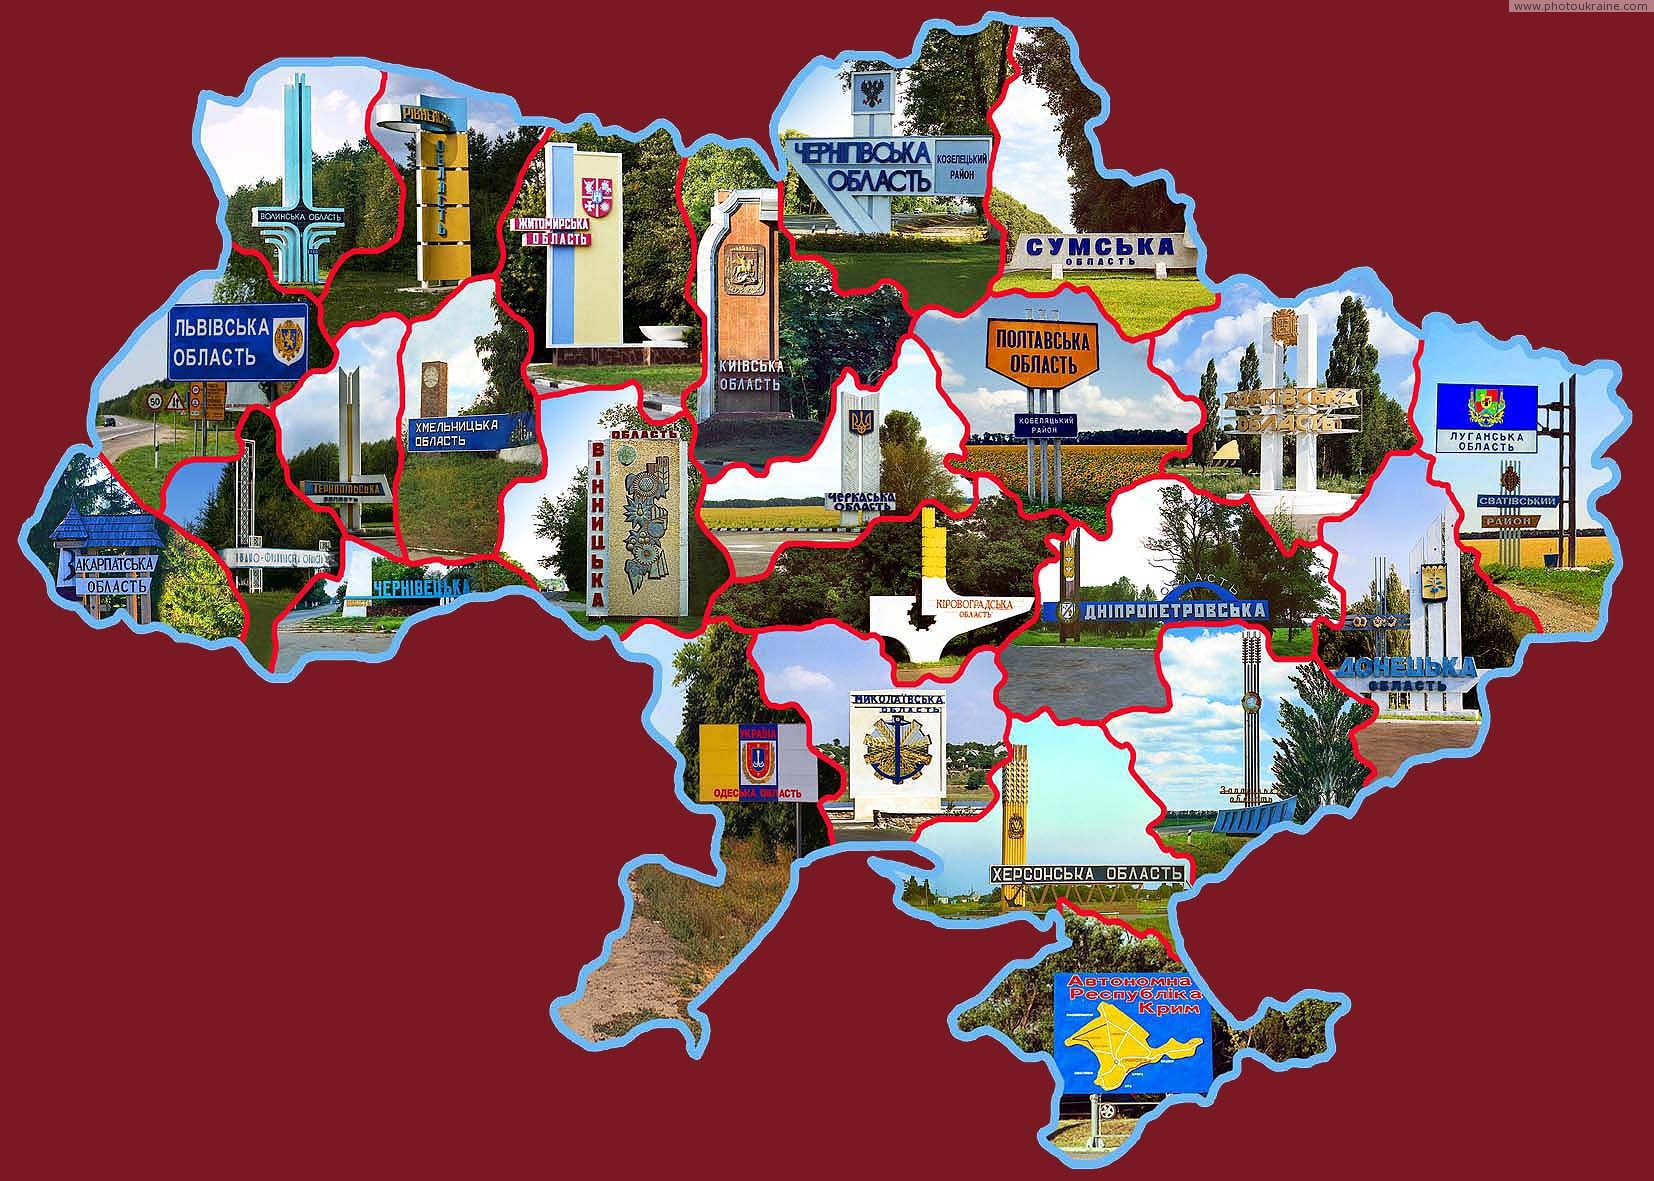 Road signs of administrative regions of Ukraine